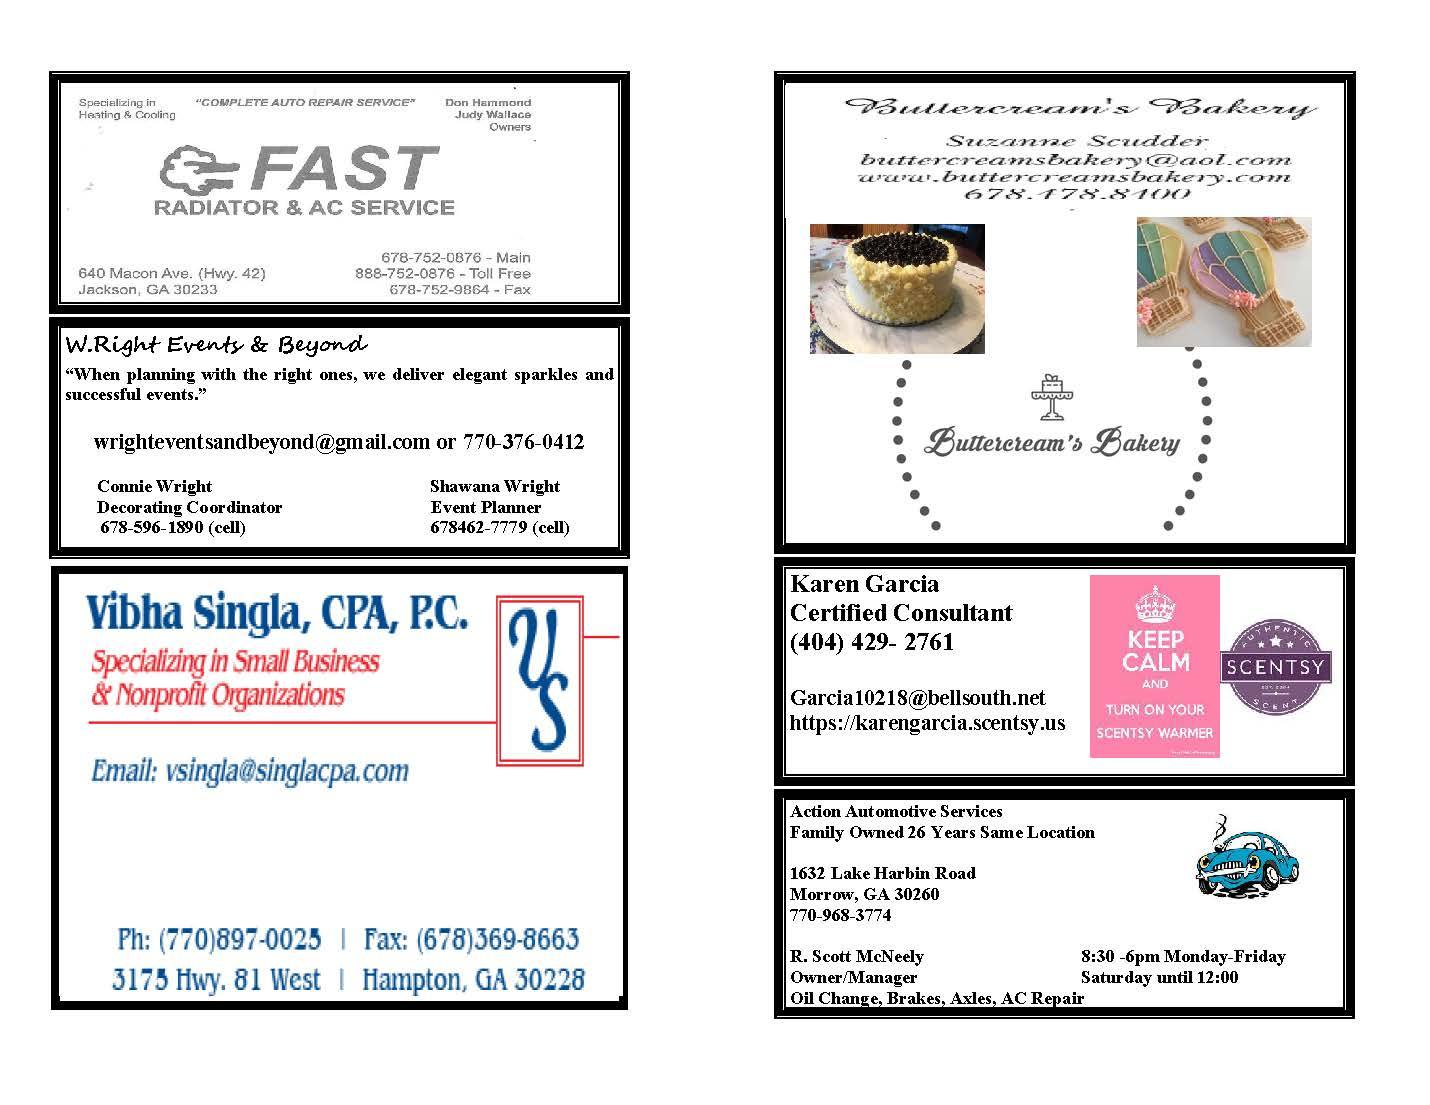 p.-14-Fast-Radiator-Wright-Vibha-Singla-cpa-Buttercreams-Bakery-action-auto-Sentsy